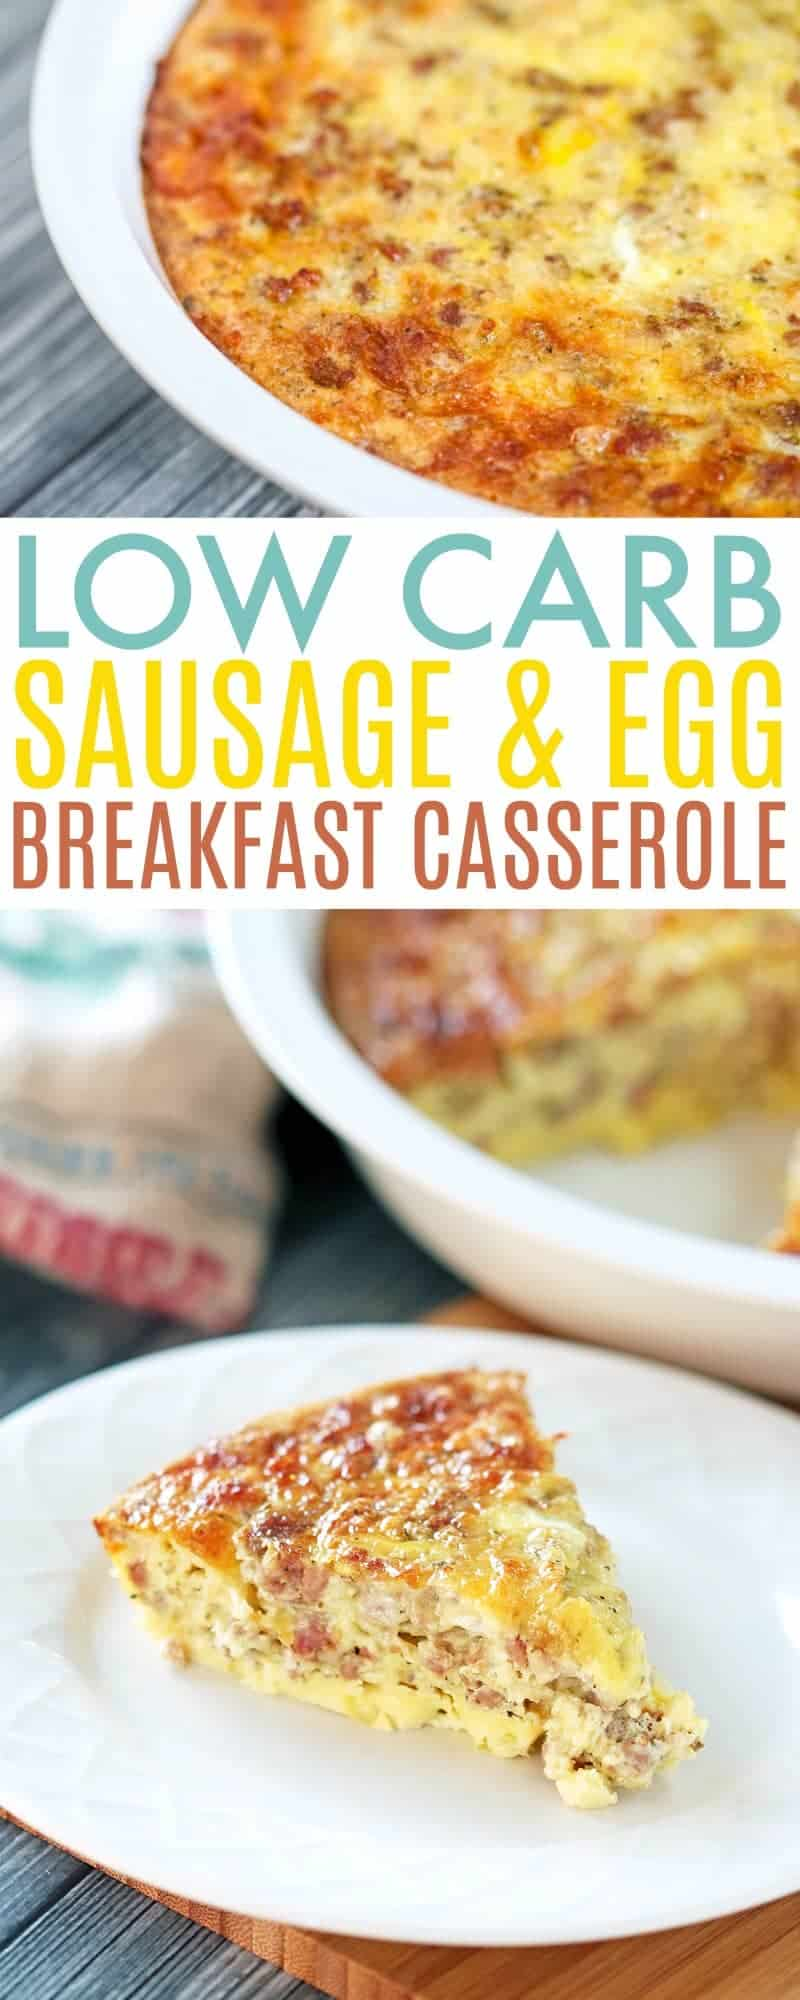 Low Carb Breakfast Casserole - Low Carb Sausage and Egg - Best Keto Breakfast Casserole Recipes for Ketogenic Diet. Try these amazing Keto breakfast casserole recipes with bacon, cream cheese, spinach or with ham. Great low carb make ahead breakfast, also some slow cooker recipes. #keto #ketogenic #ketorecipes #diet #food #lowcarb